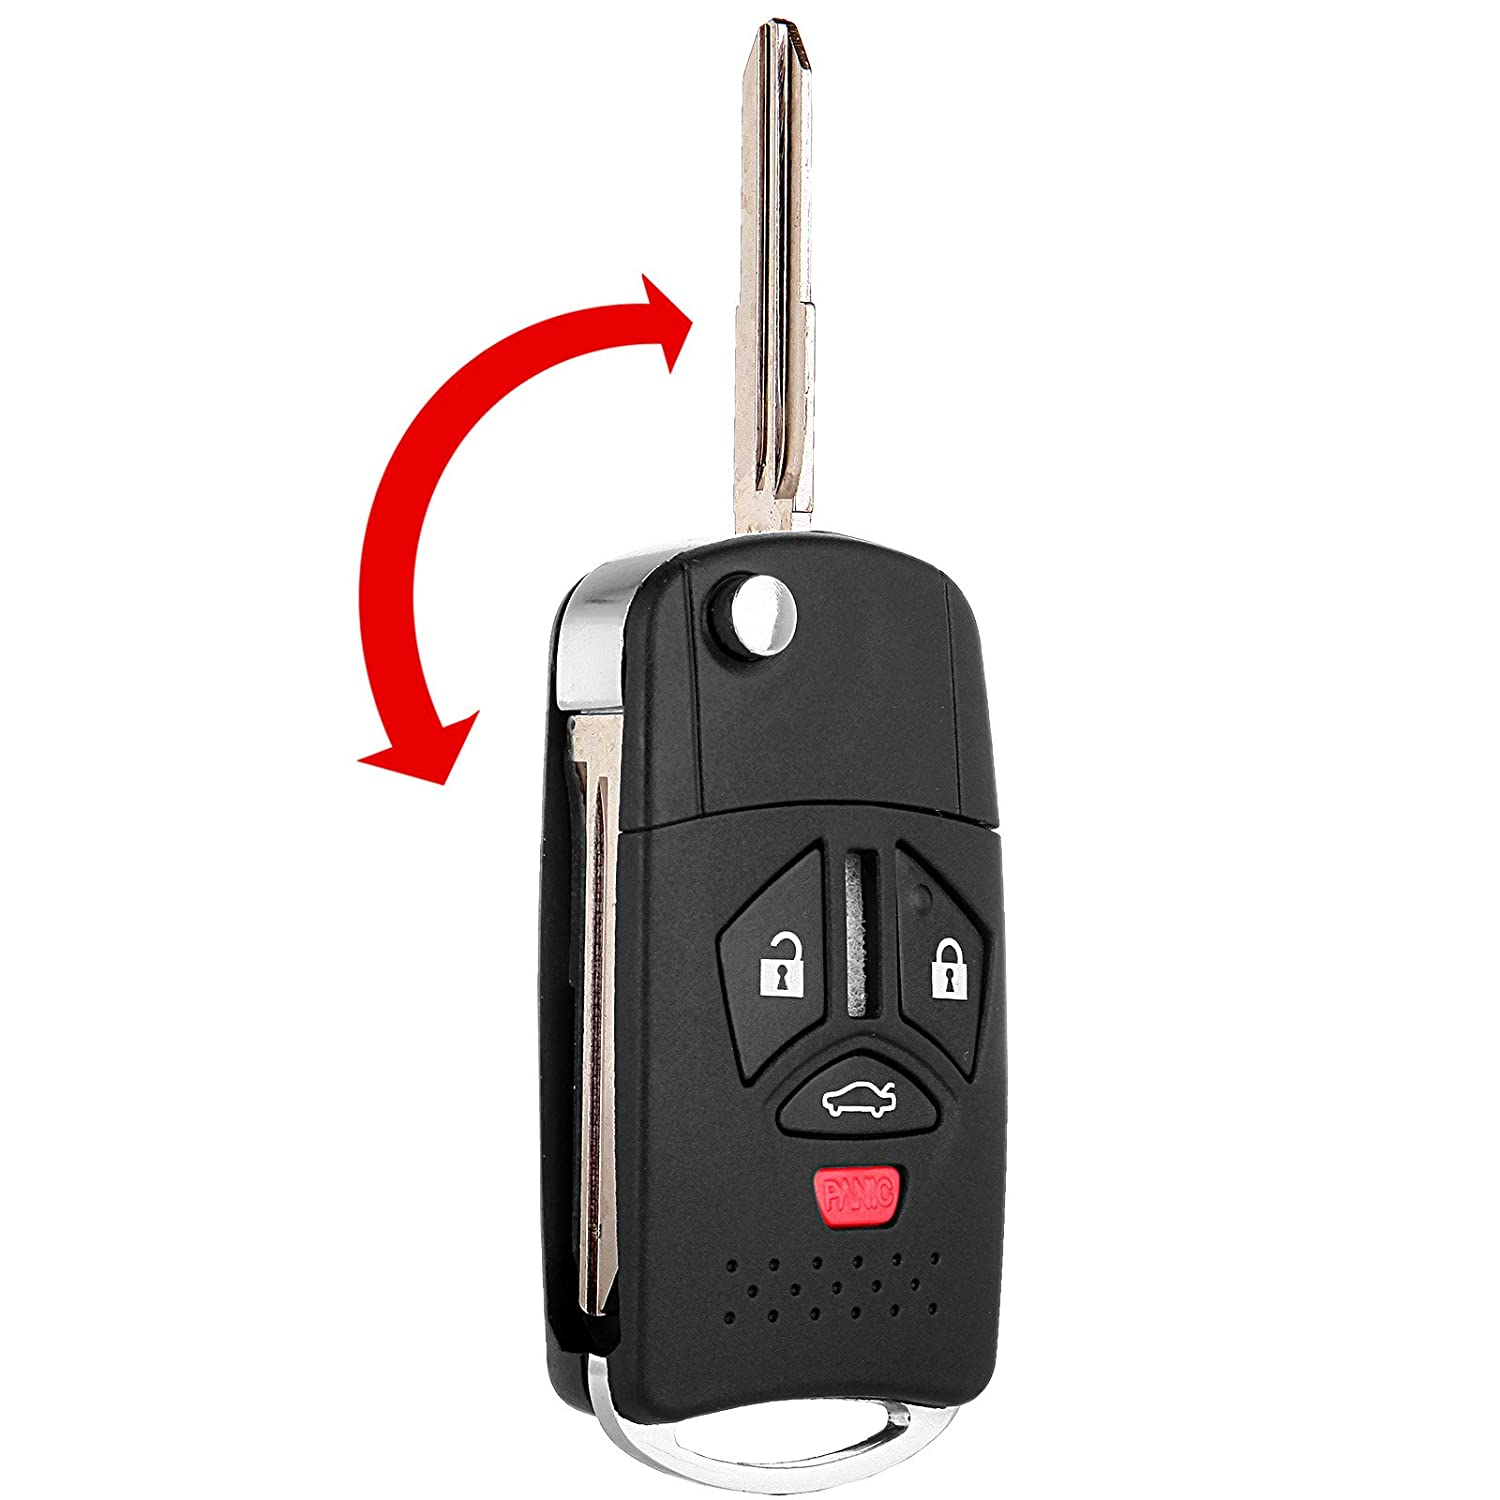 Scitoo 2 New Replacemnet Flip Remote Key FOB Keyless Shell Case For MitsubishiG Uncut